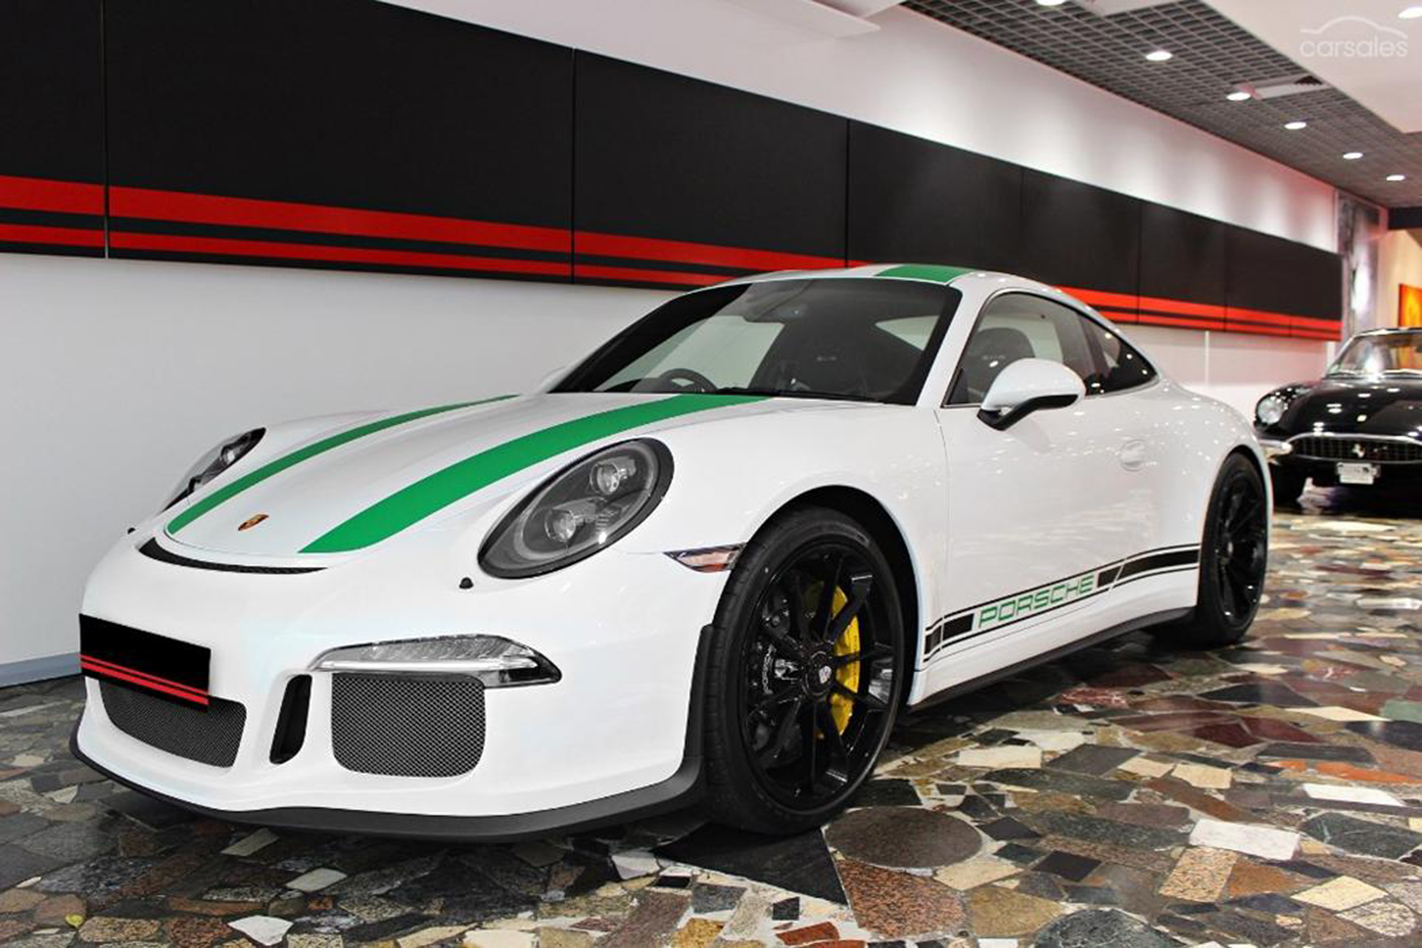 911R For Sale >> Porsche 911r For Sale For 1 2m